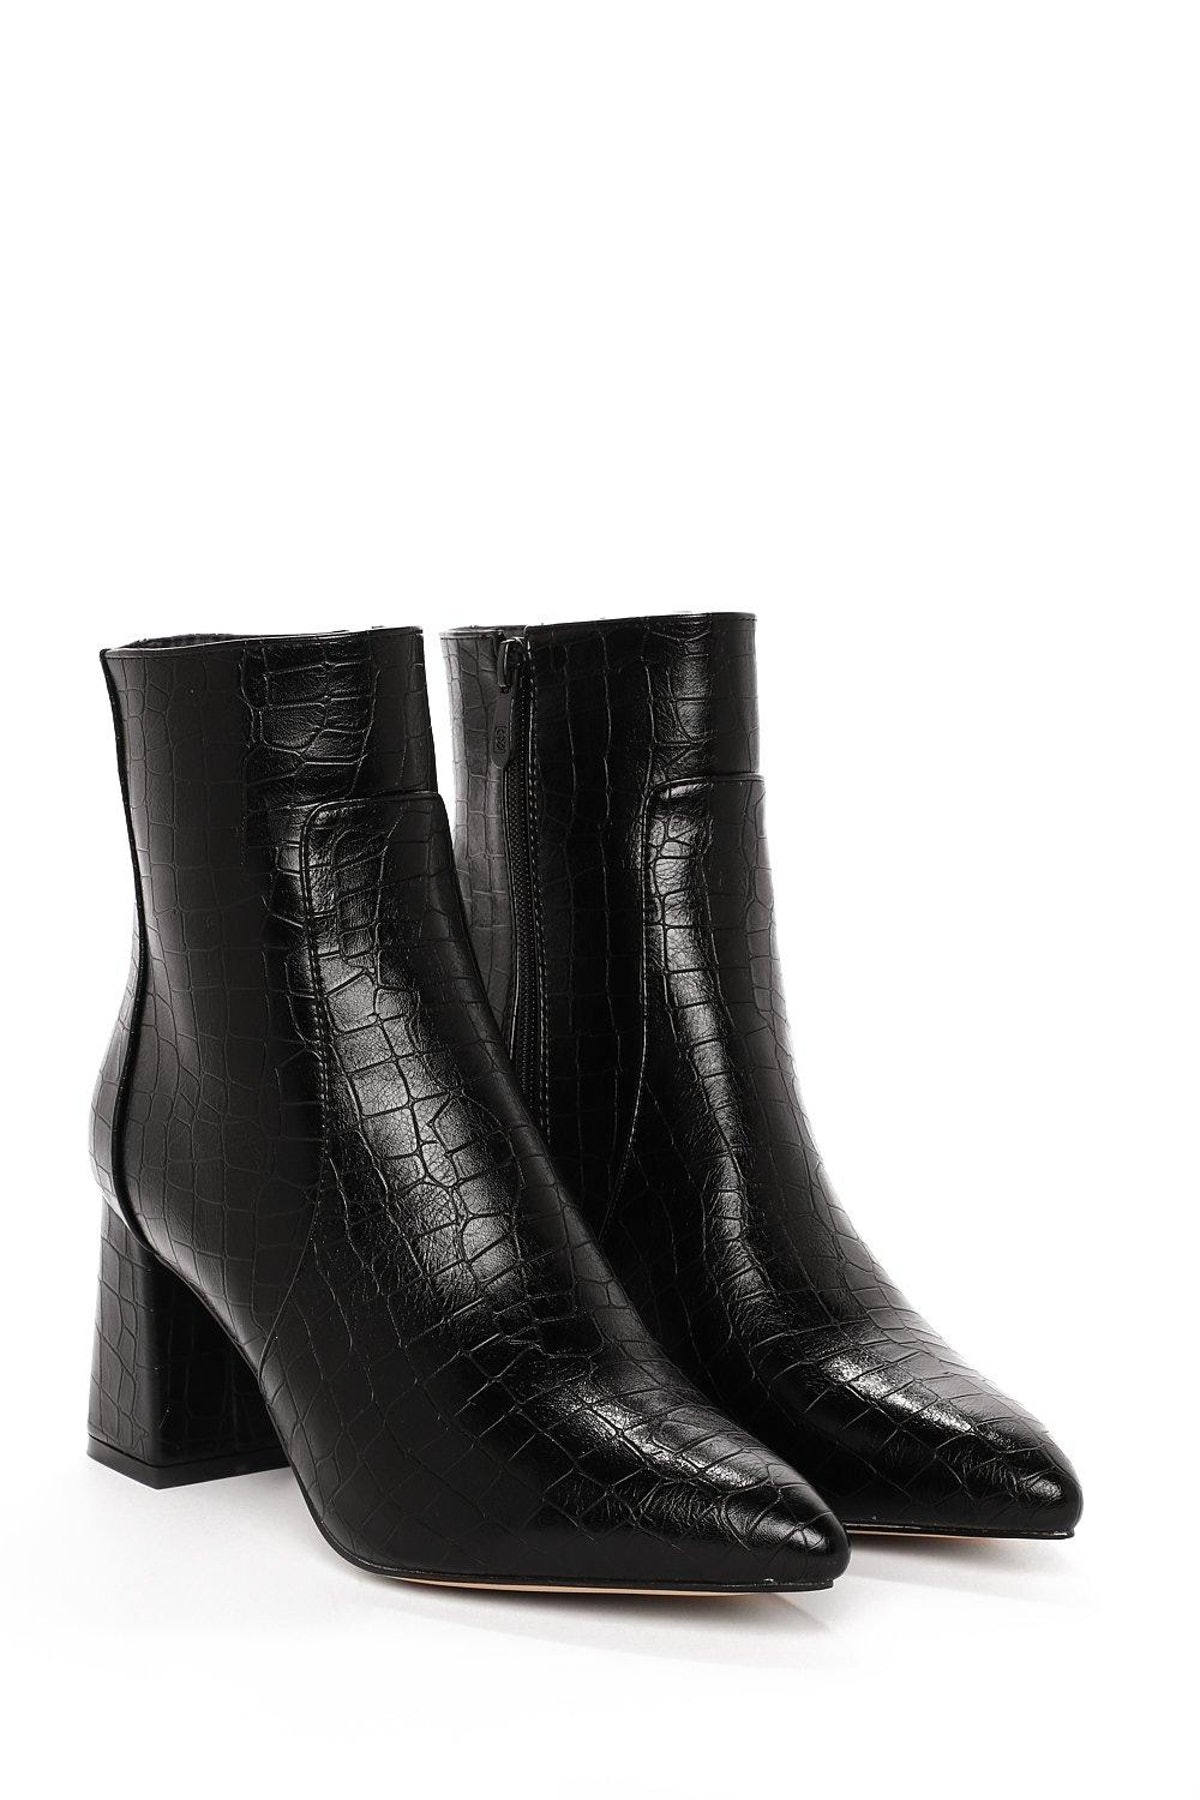 Croc It Out Vegan Leather Boot